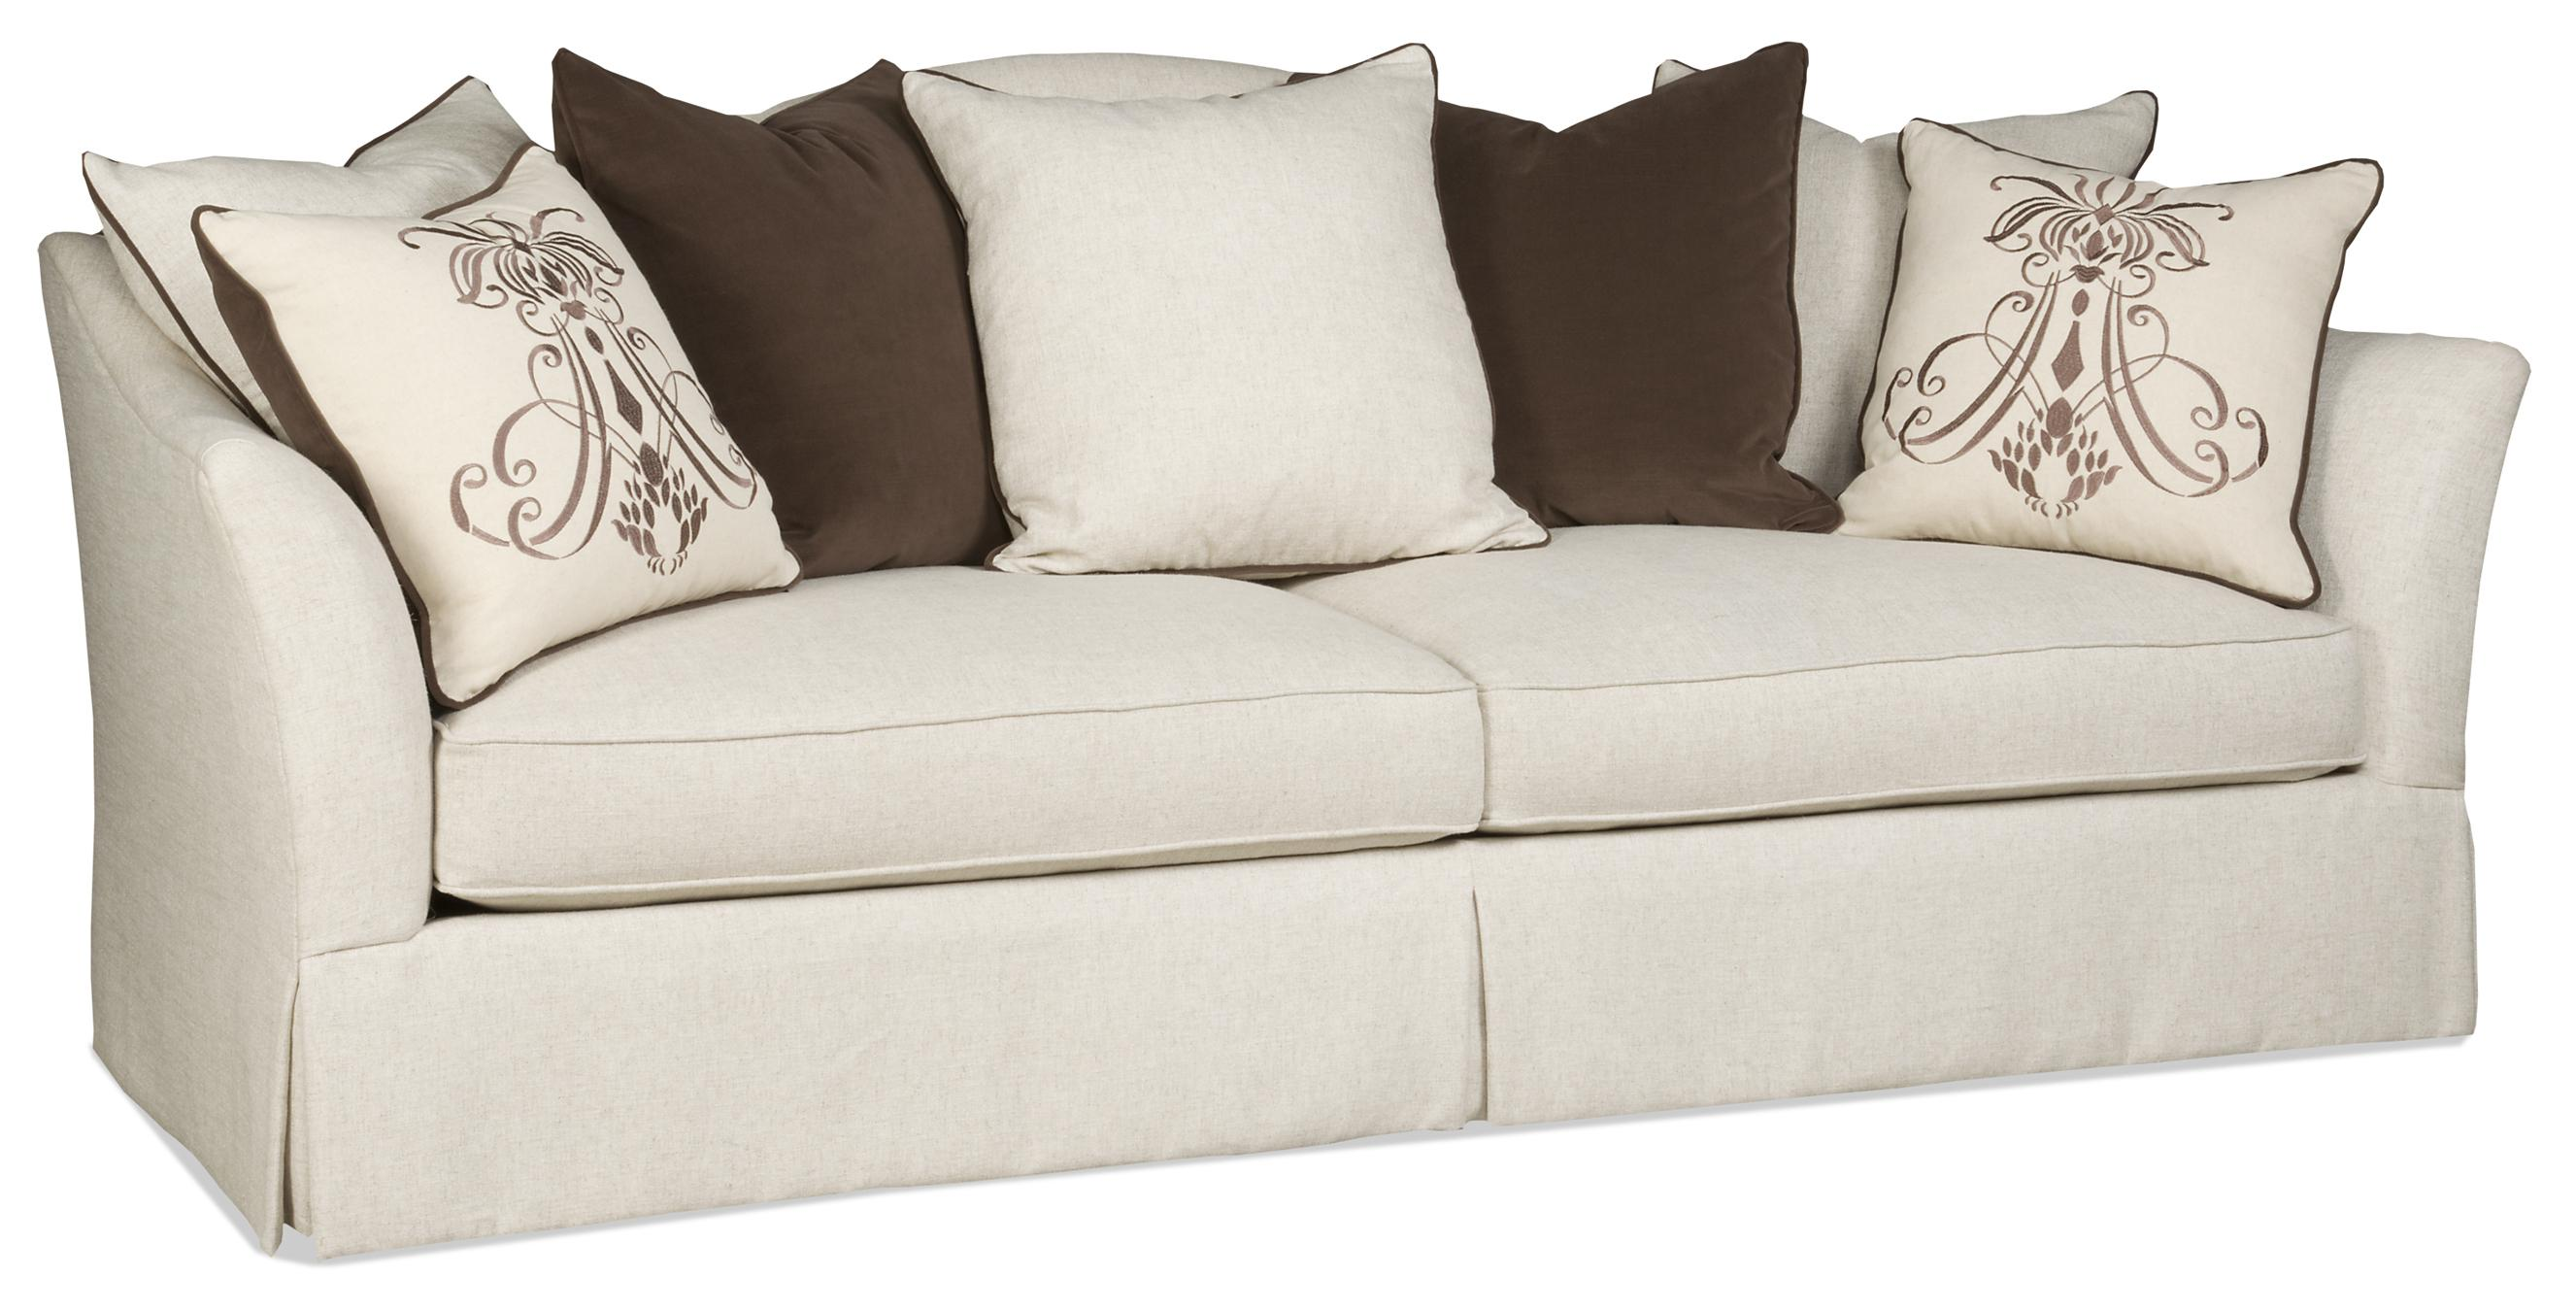 Sam Moore Angelina Transitional Terback Sofa With Flair Tapered Arms And Skirt Ahfa Dealer Locator